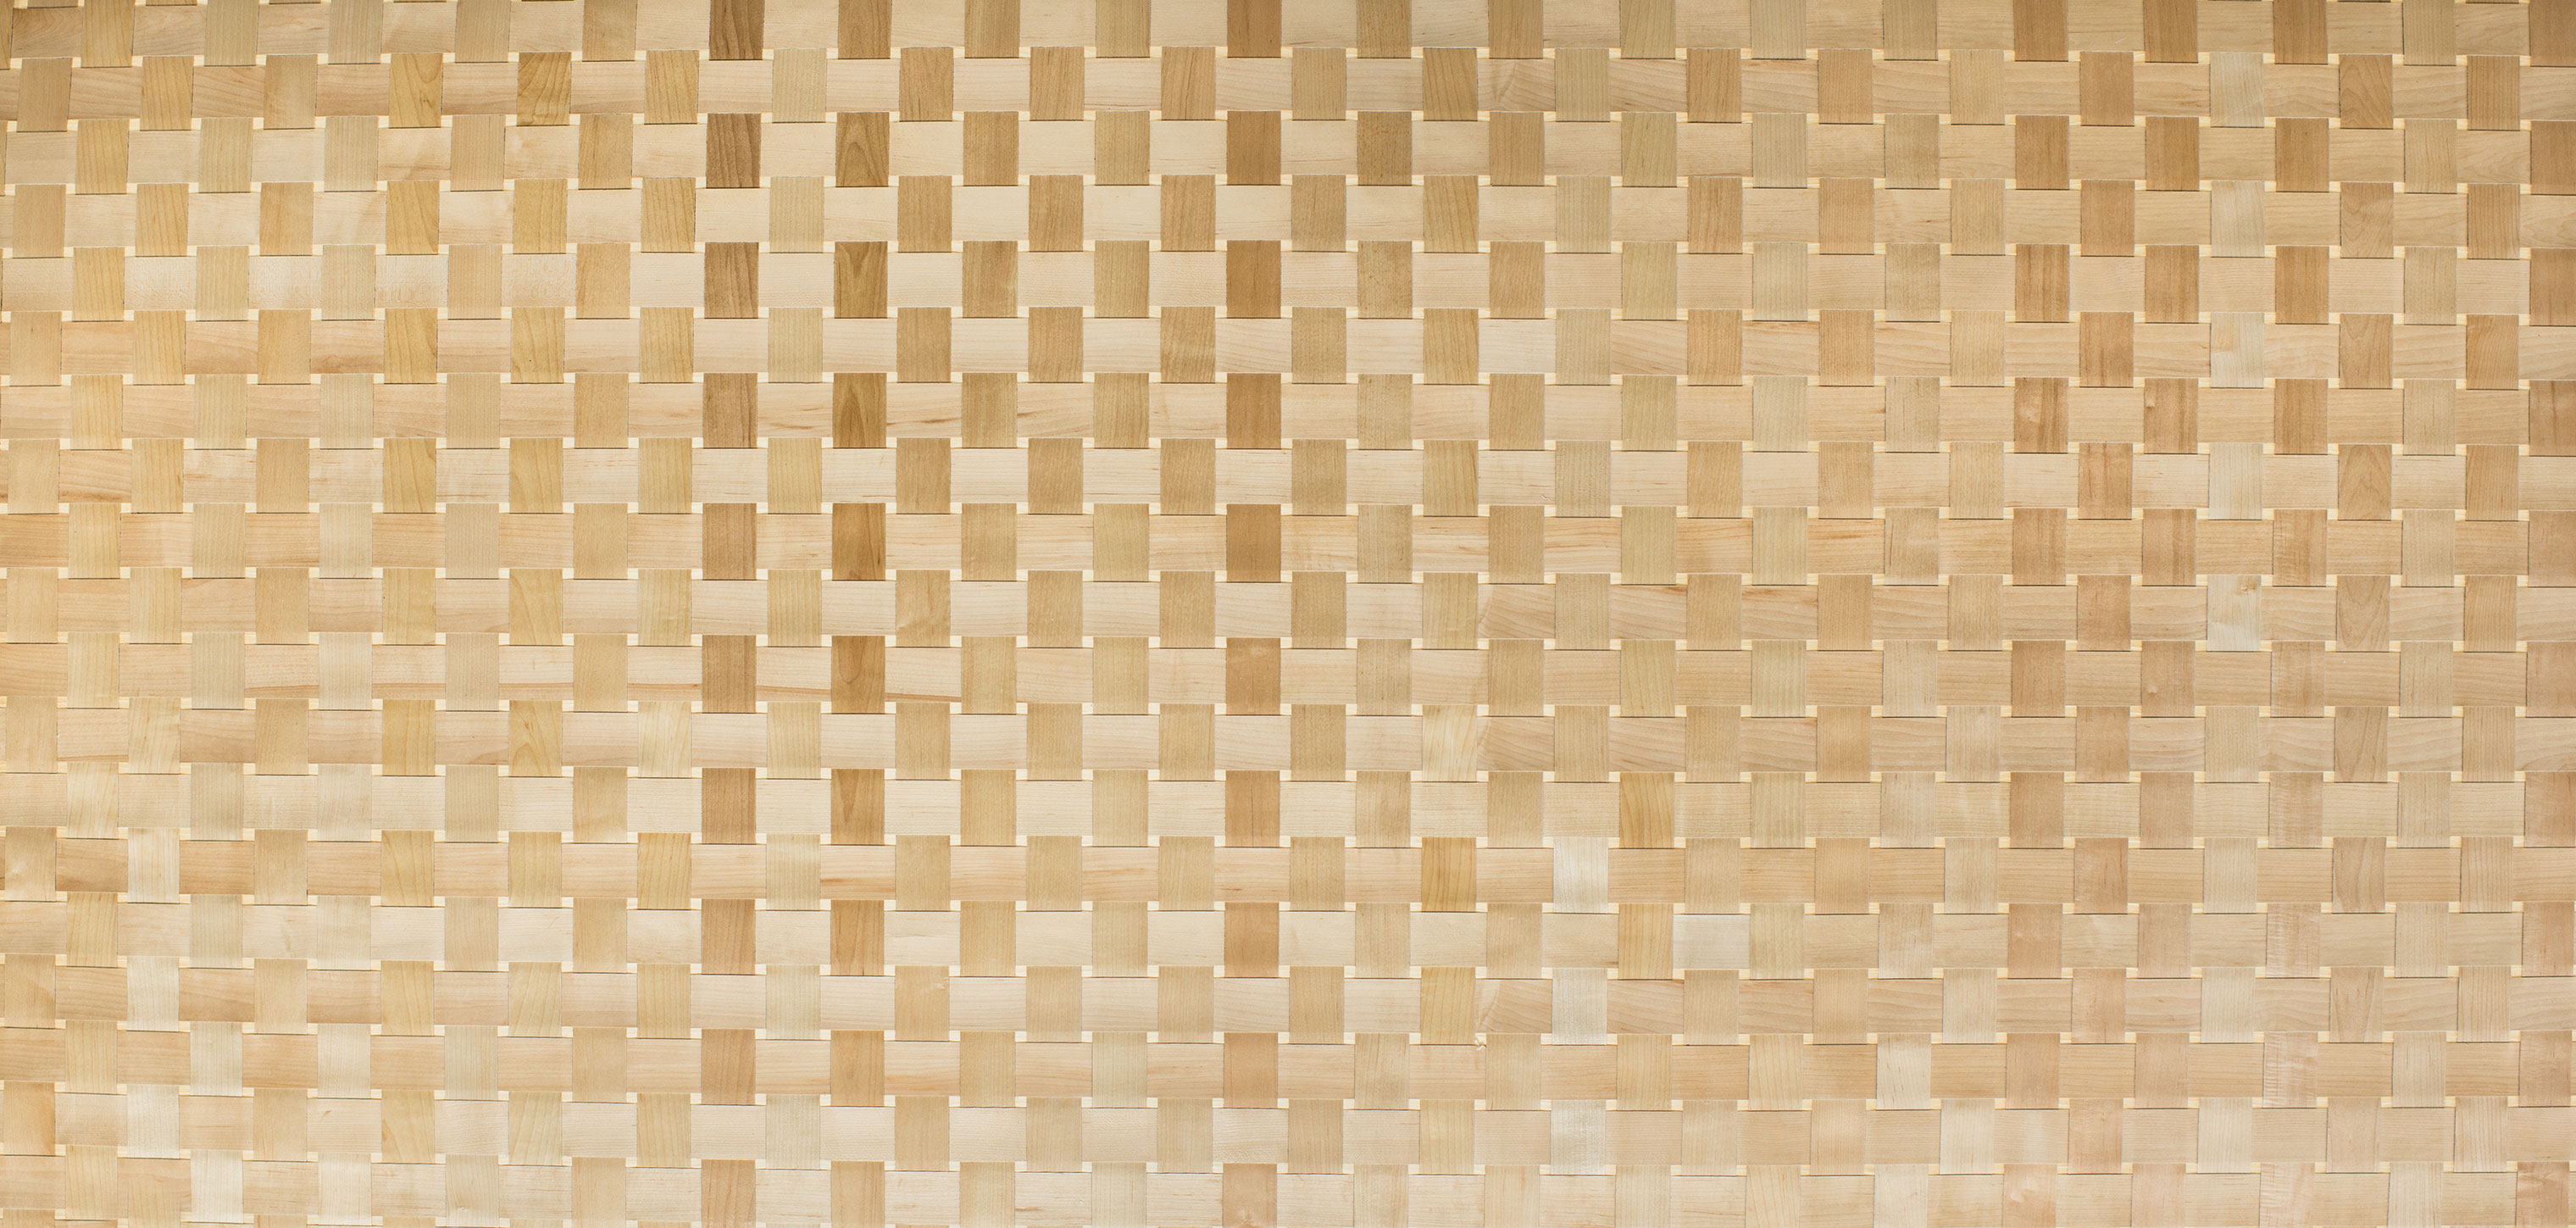 Octoweave Hand Woven Wood Laminate Sheets | Octopus Products